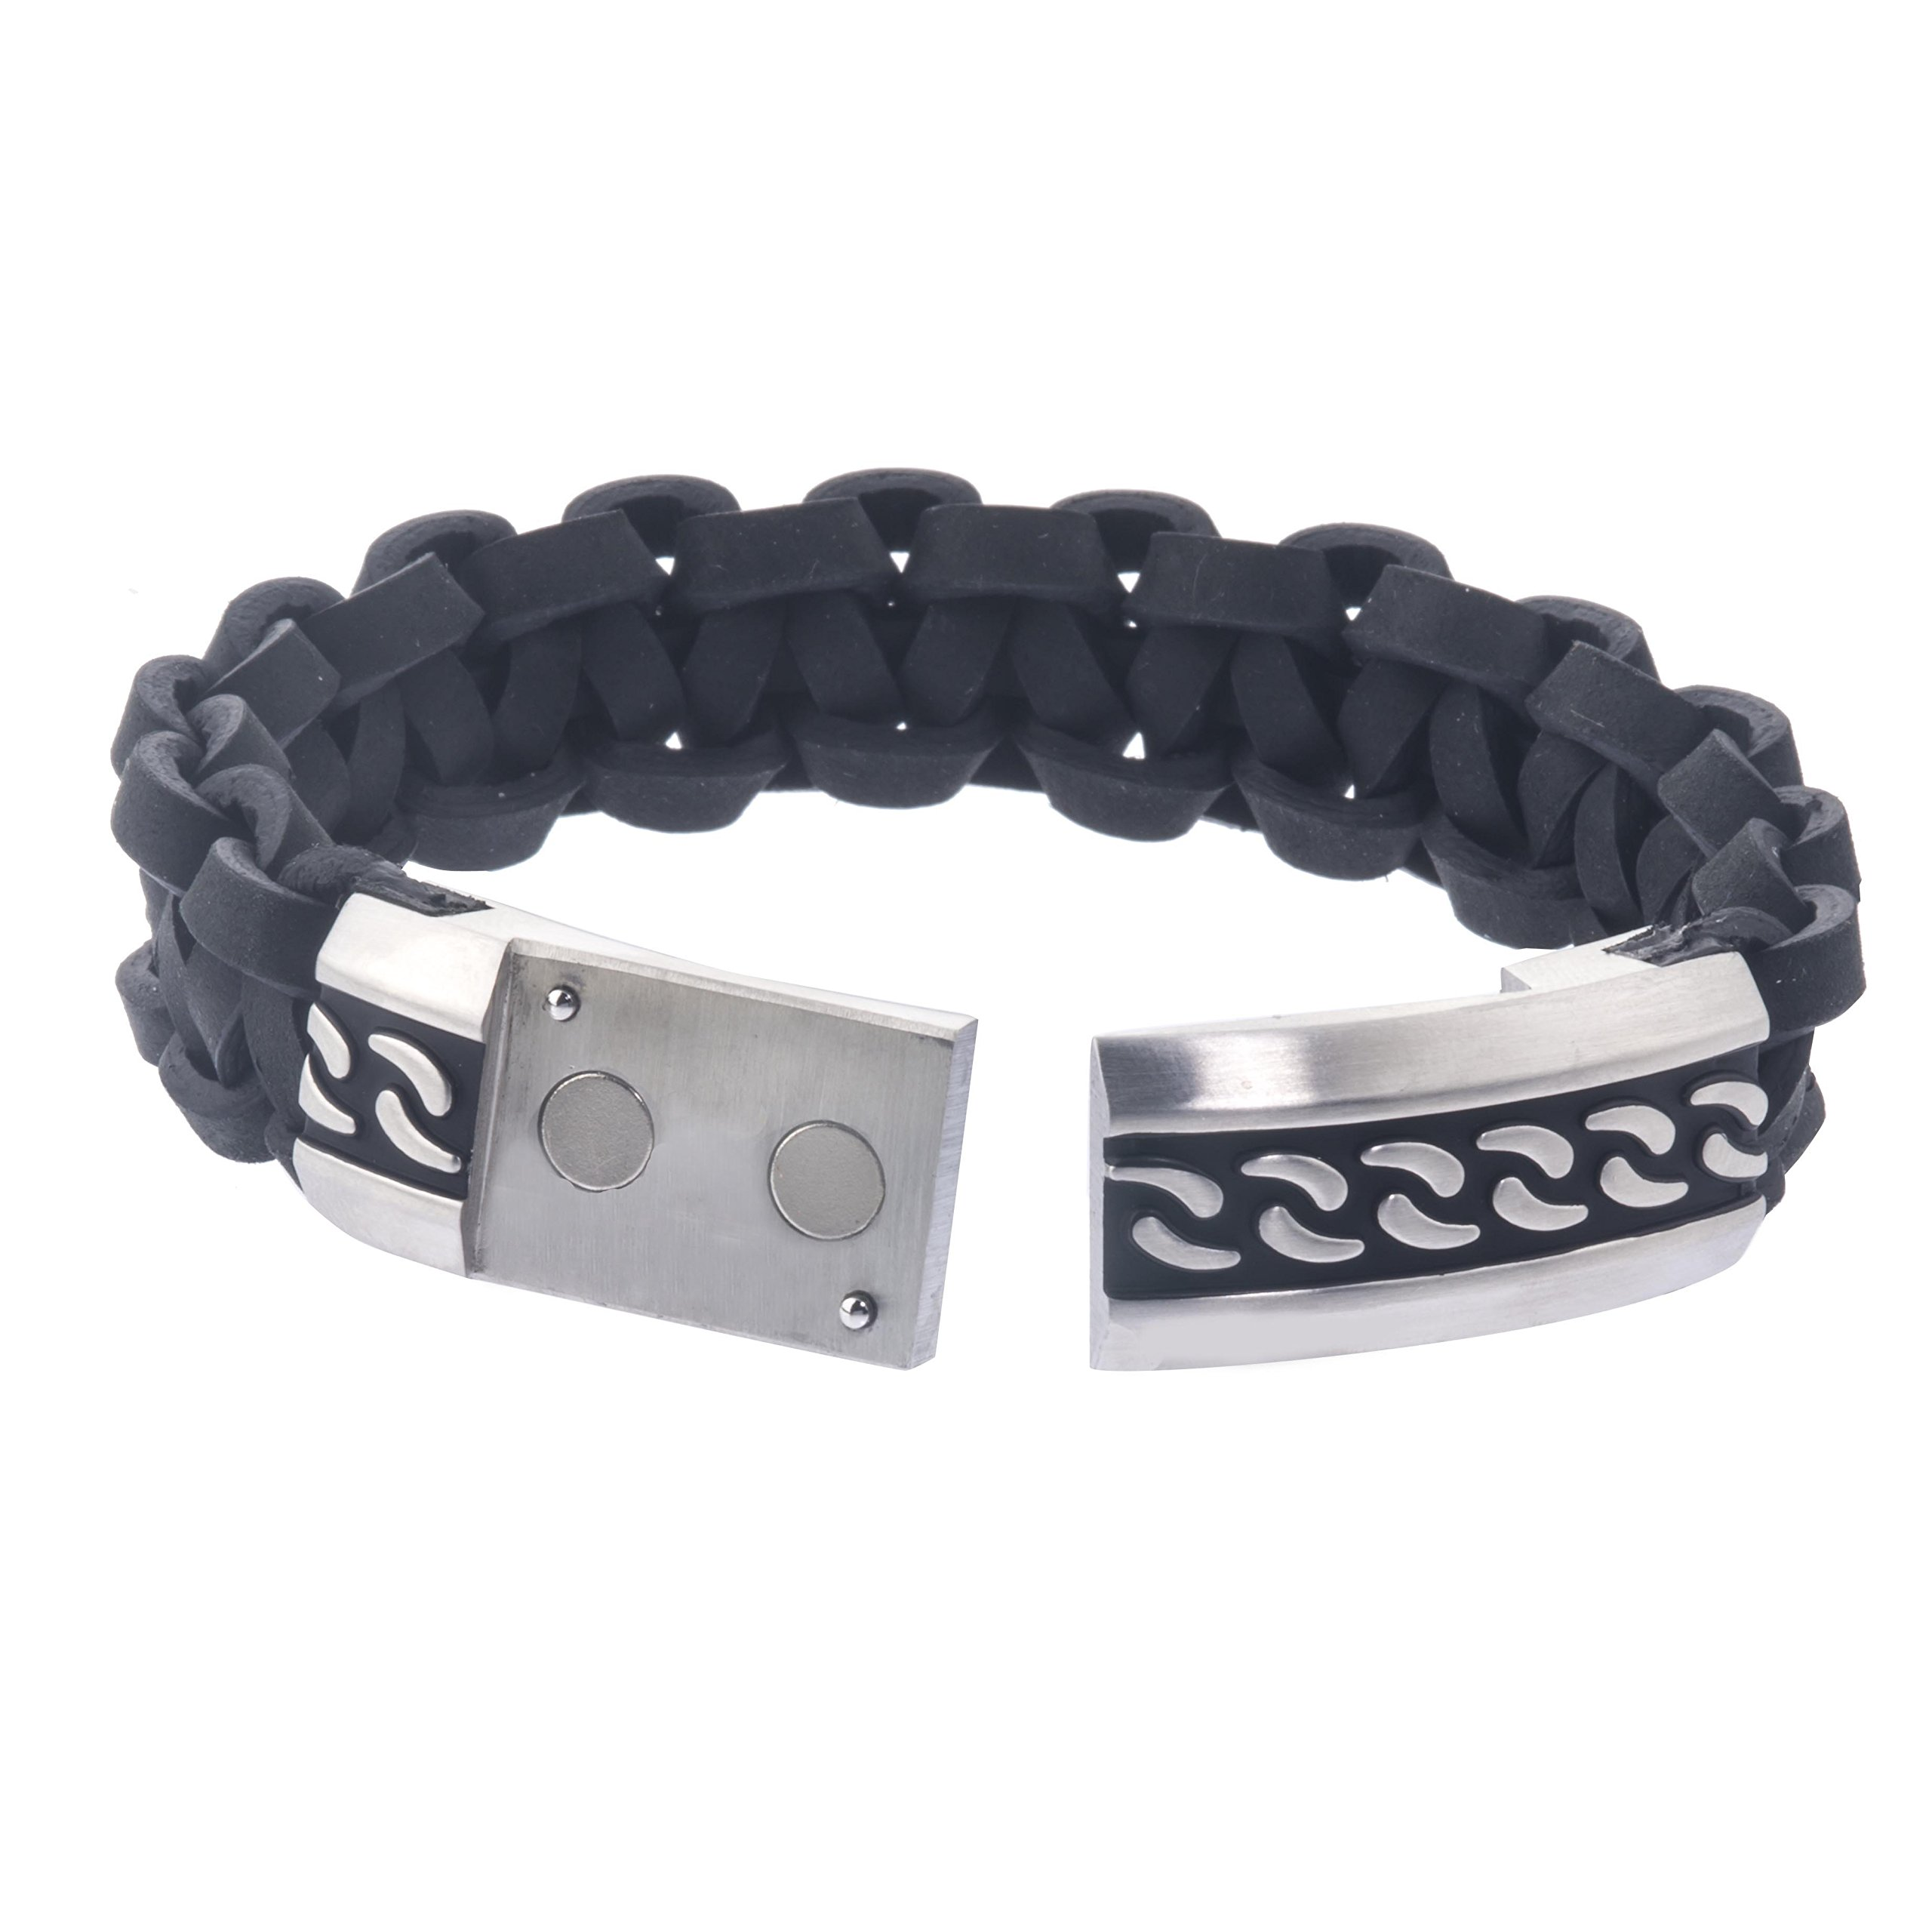 AX Jewelry Mens Stainless Steel Braided Leather Bracelet by AX Jewelry (Image #3)